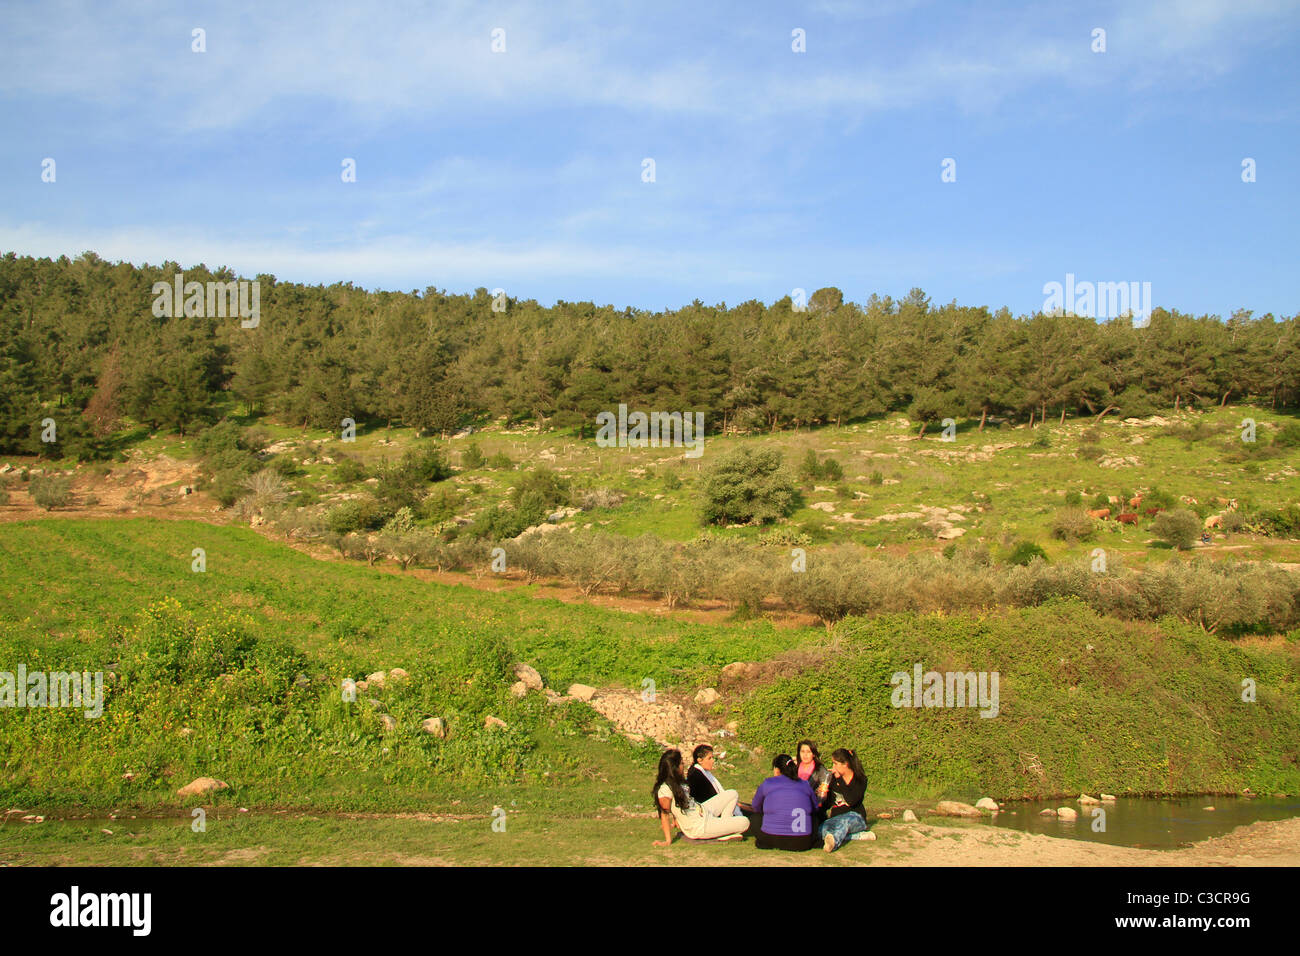 Israel, Lower Galilee, Ein Ivka in Wadi Zippori Stock Photo